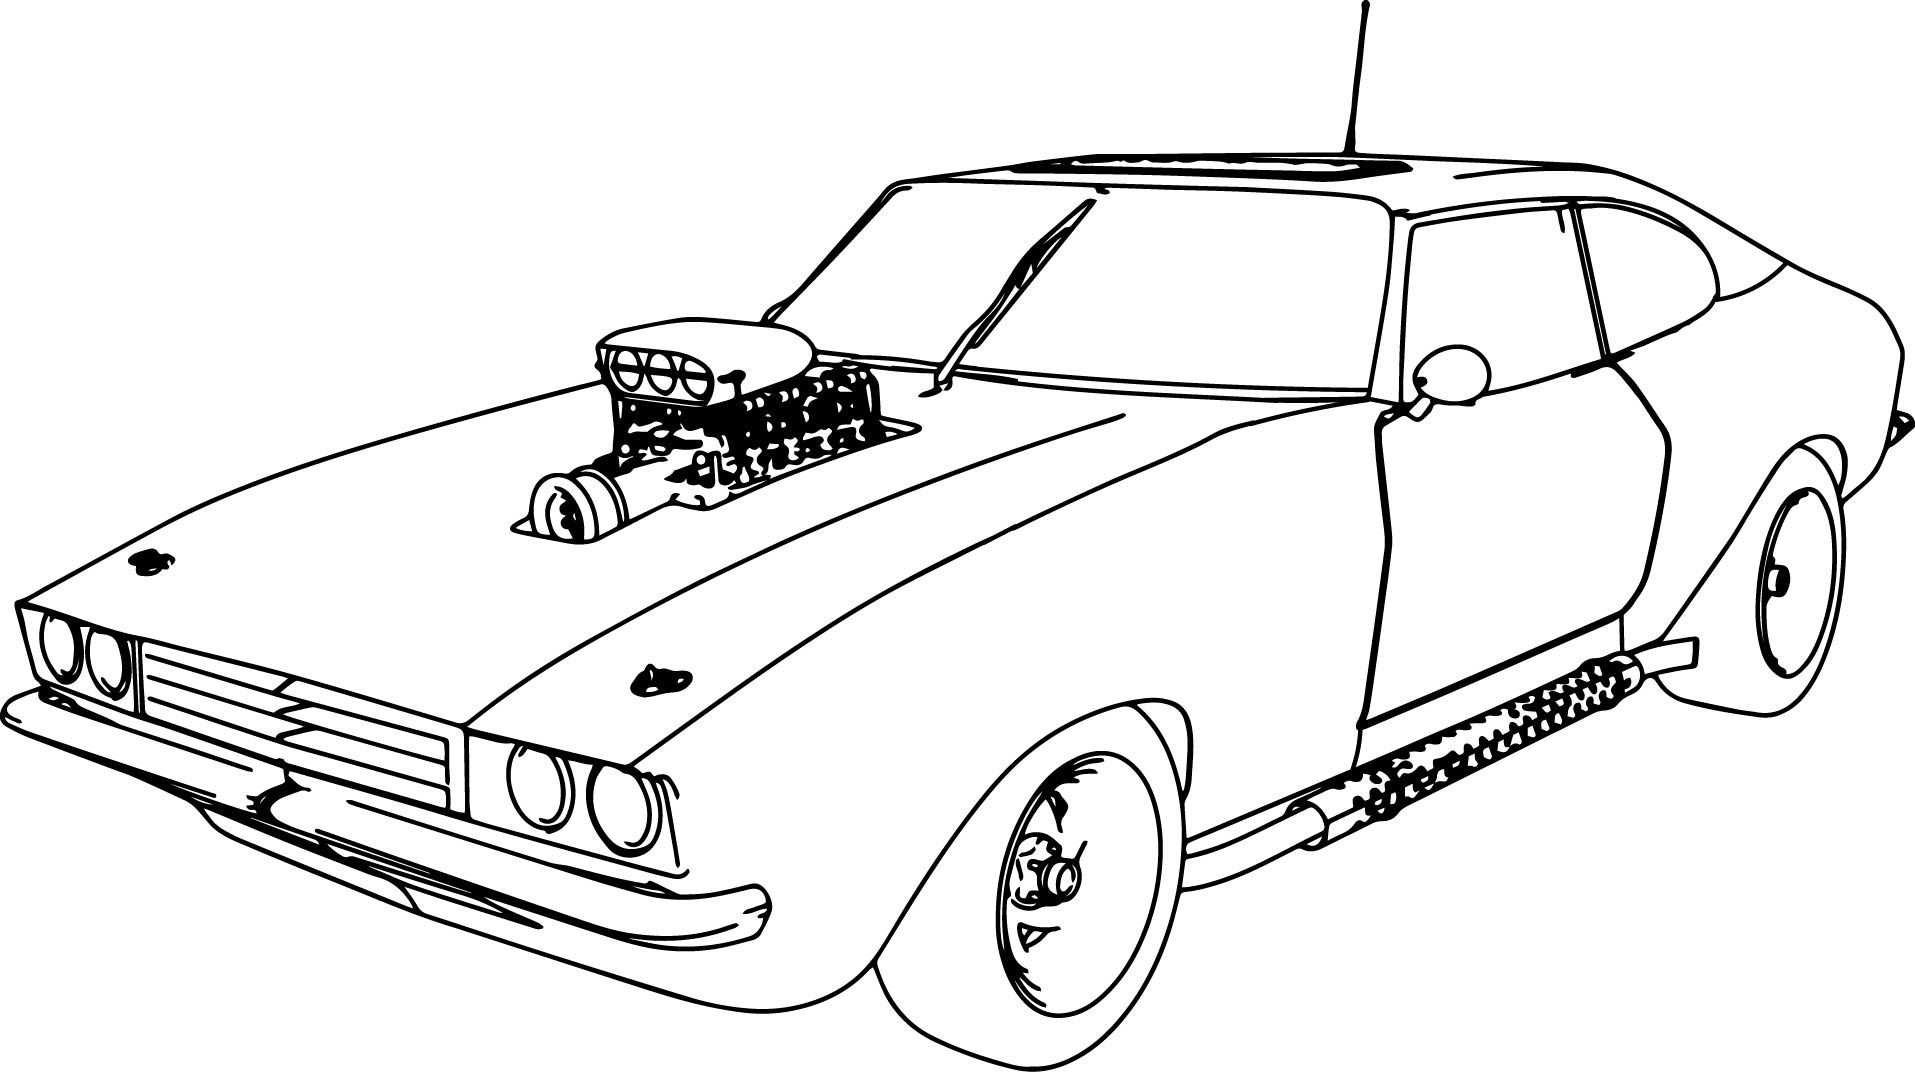 Exclusive Photo Of Muscle Car Coloring Pages Entitlementtrap Com In 2020 Race Car Coloring Pages Cars Coloring Pages Sports Coloring Pages